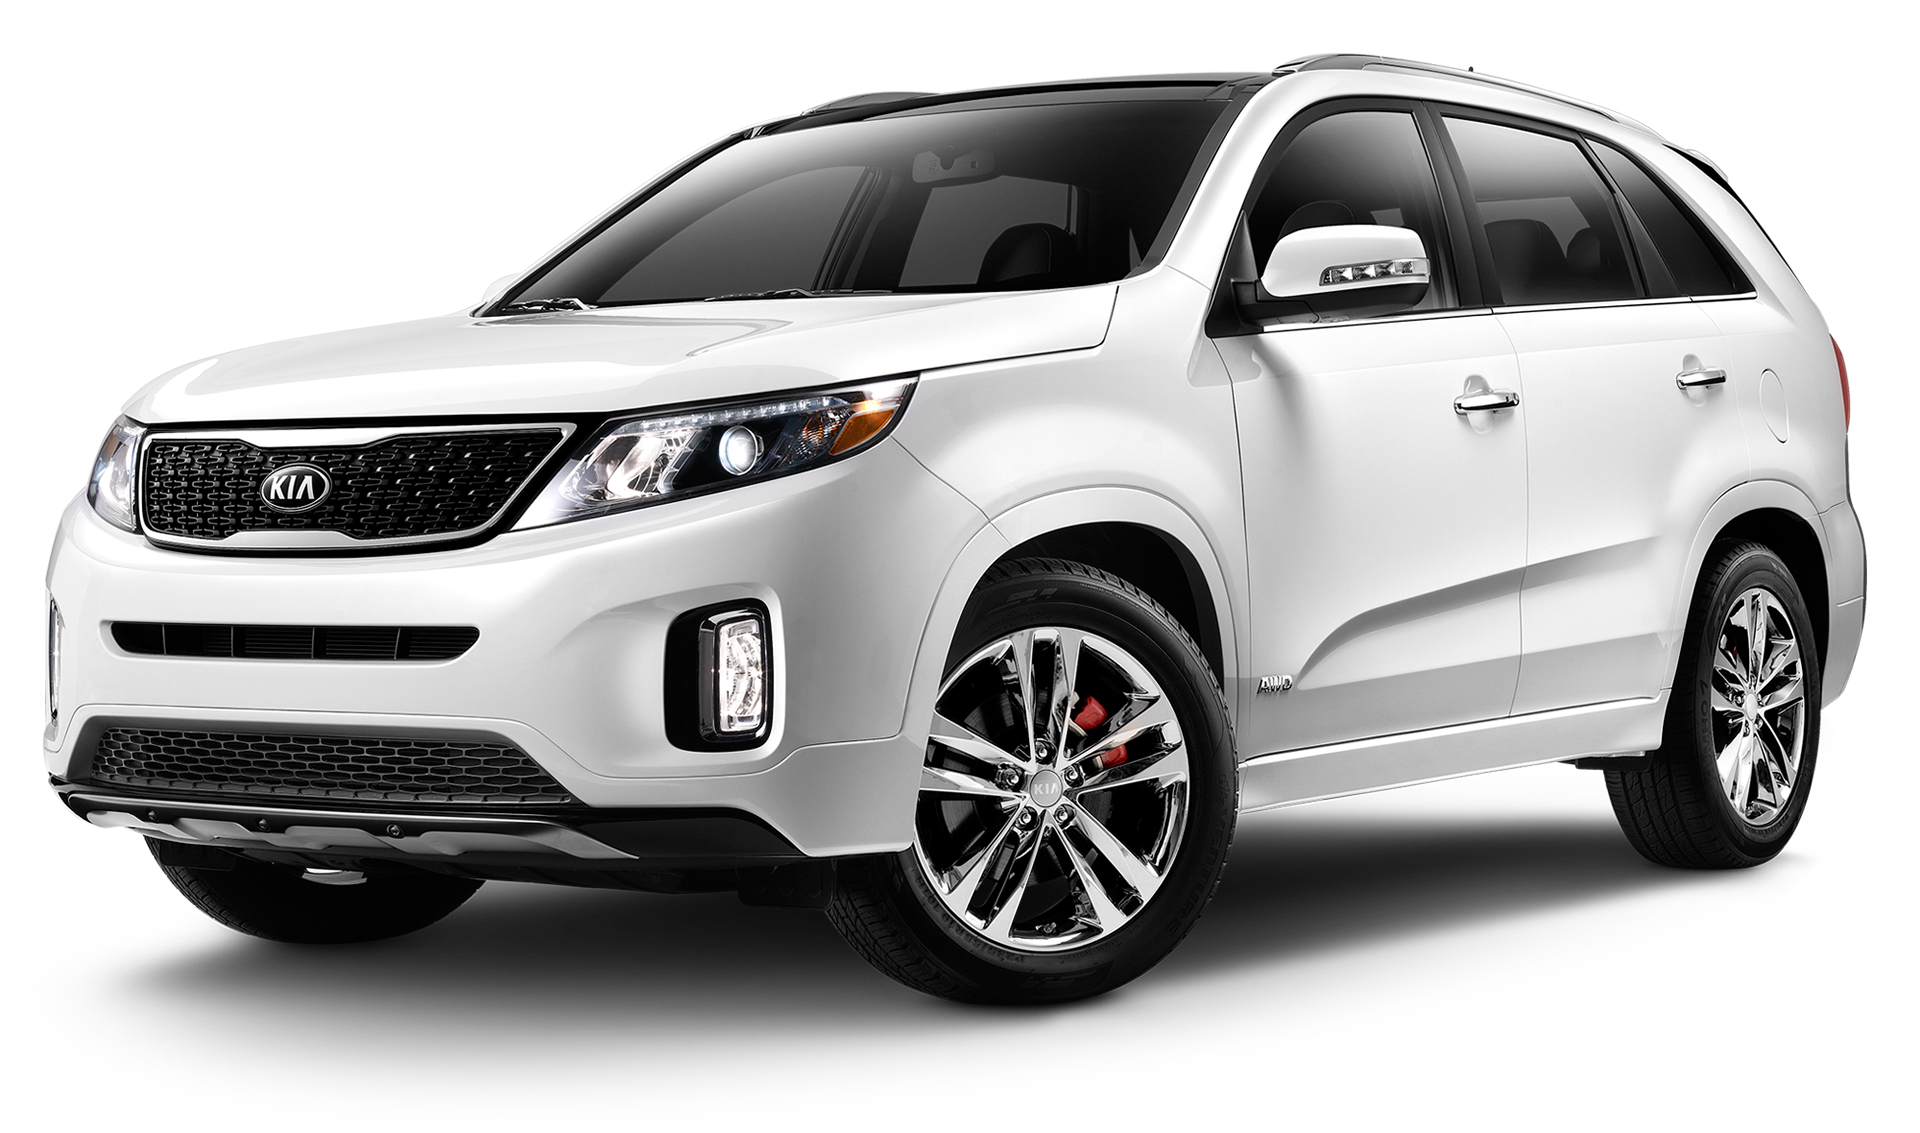 2015 Kia Sorento Desktop Pics Wallpapers - Kia HD PNG